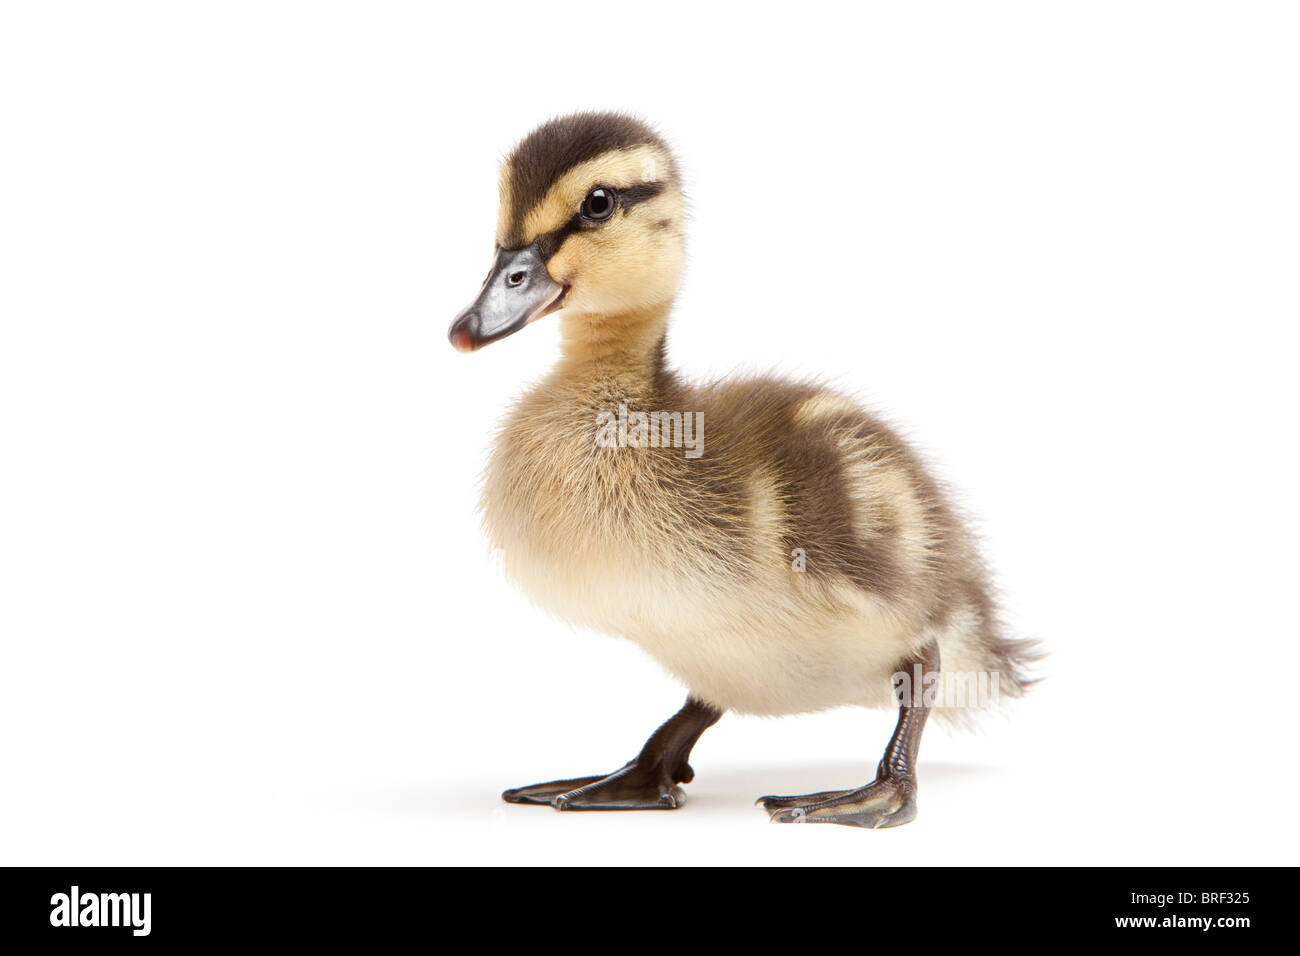 duckling isolated on white background - baby mallard (Anas platyrhynchos) closeup - Stock Image